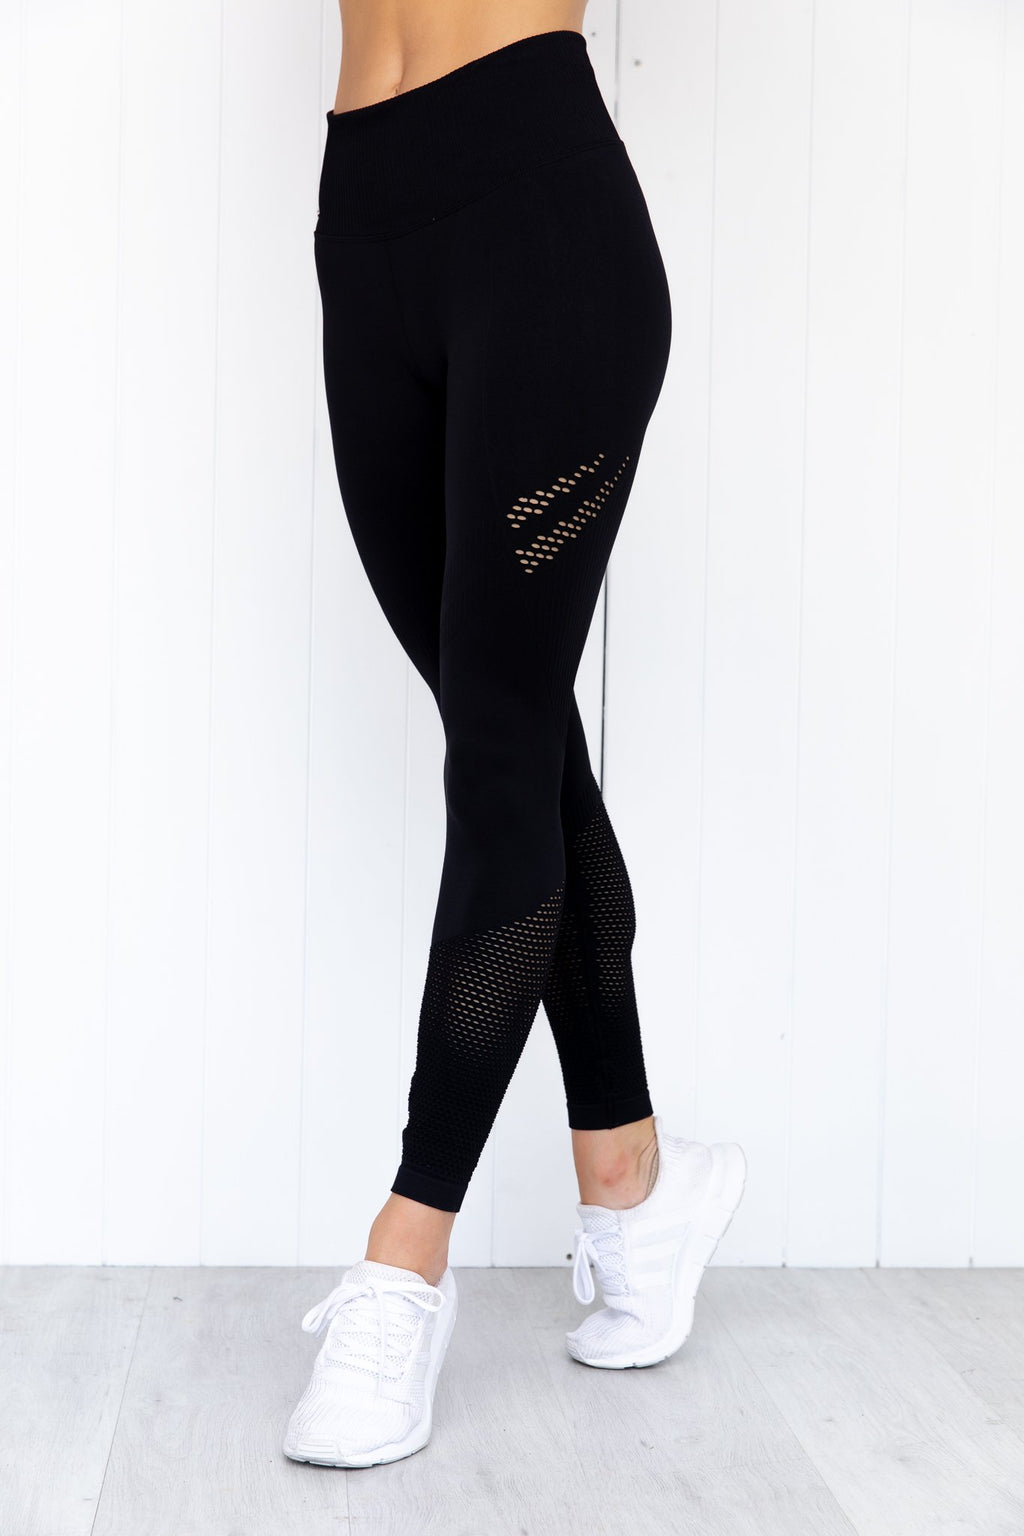 Black Statement Seamless Tights